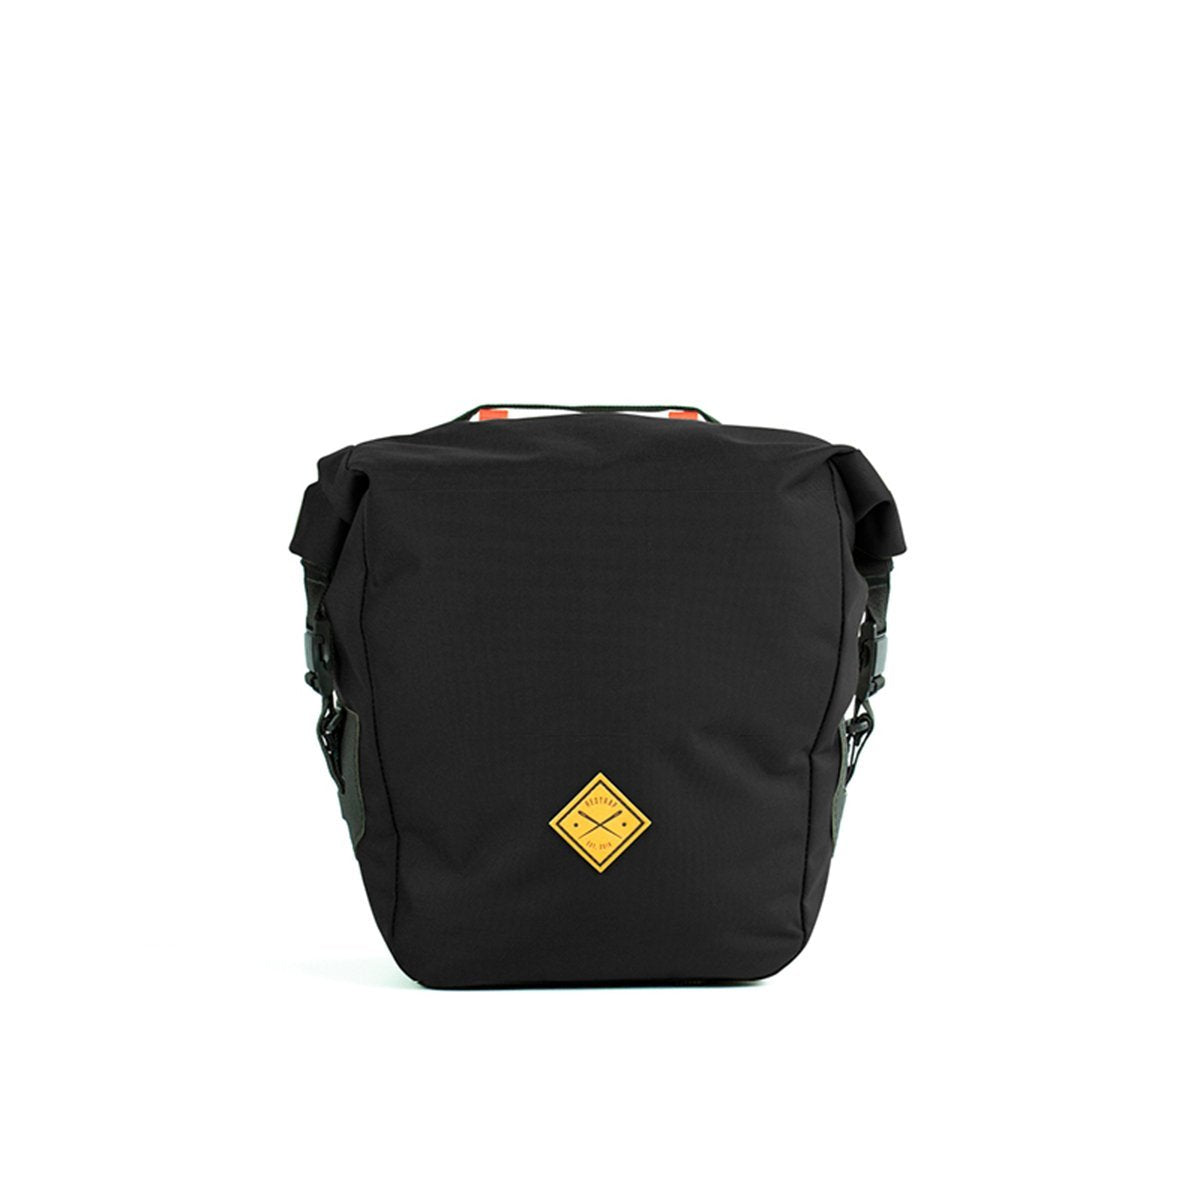 Restrap | Small Pannier | Waterproof Bicycle Pannier Bag | Black